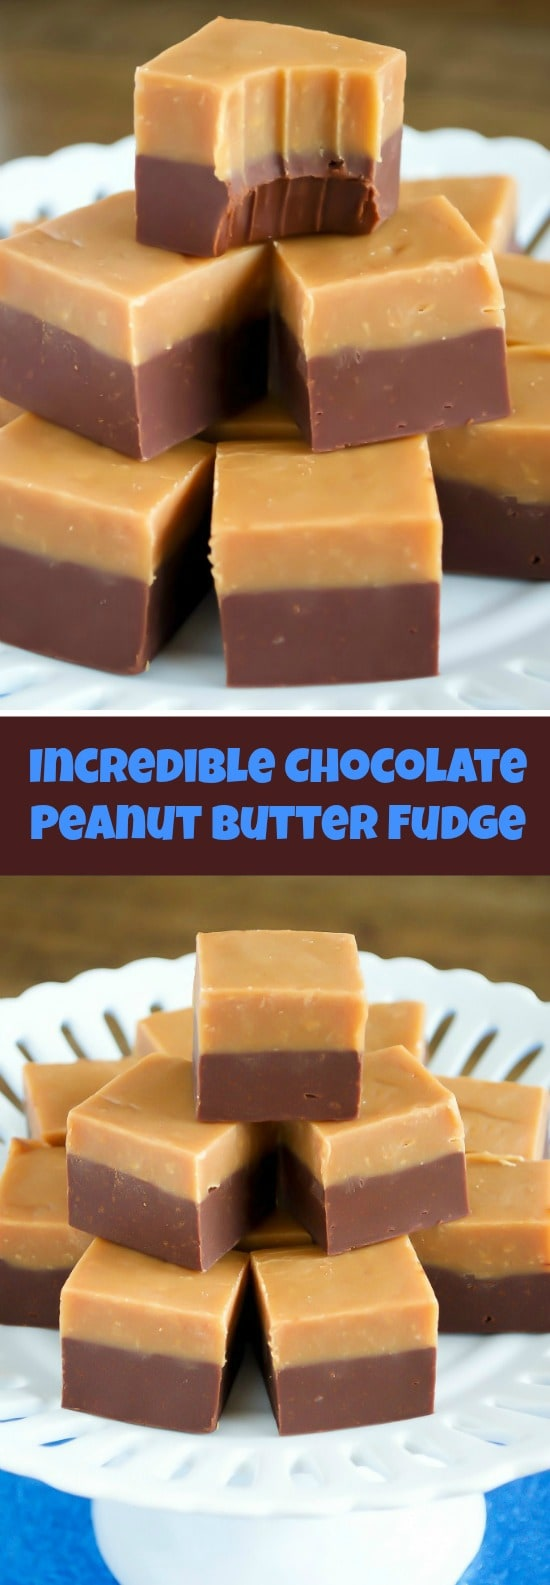 Chocolate Peanut Butter Double Decker Fudge - Back for Seconds